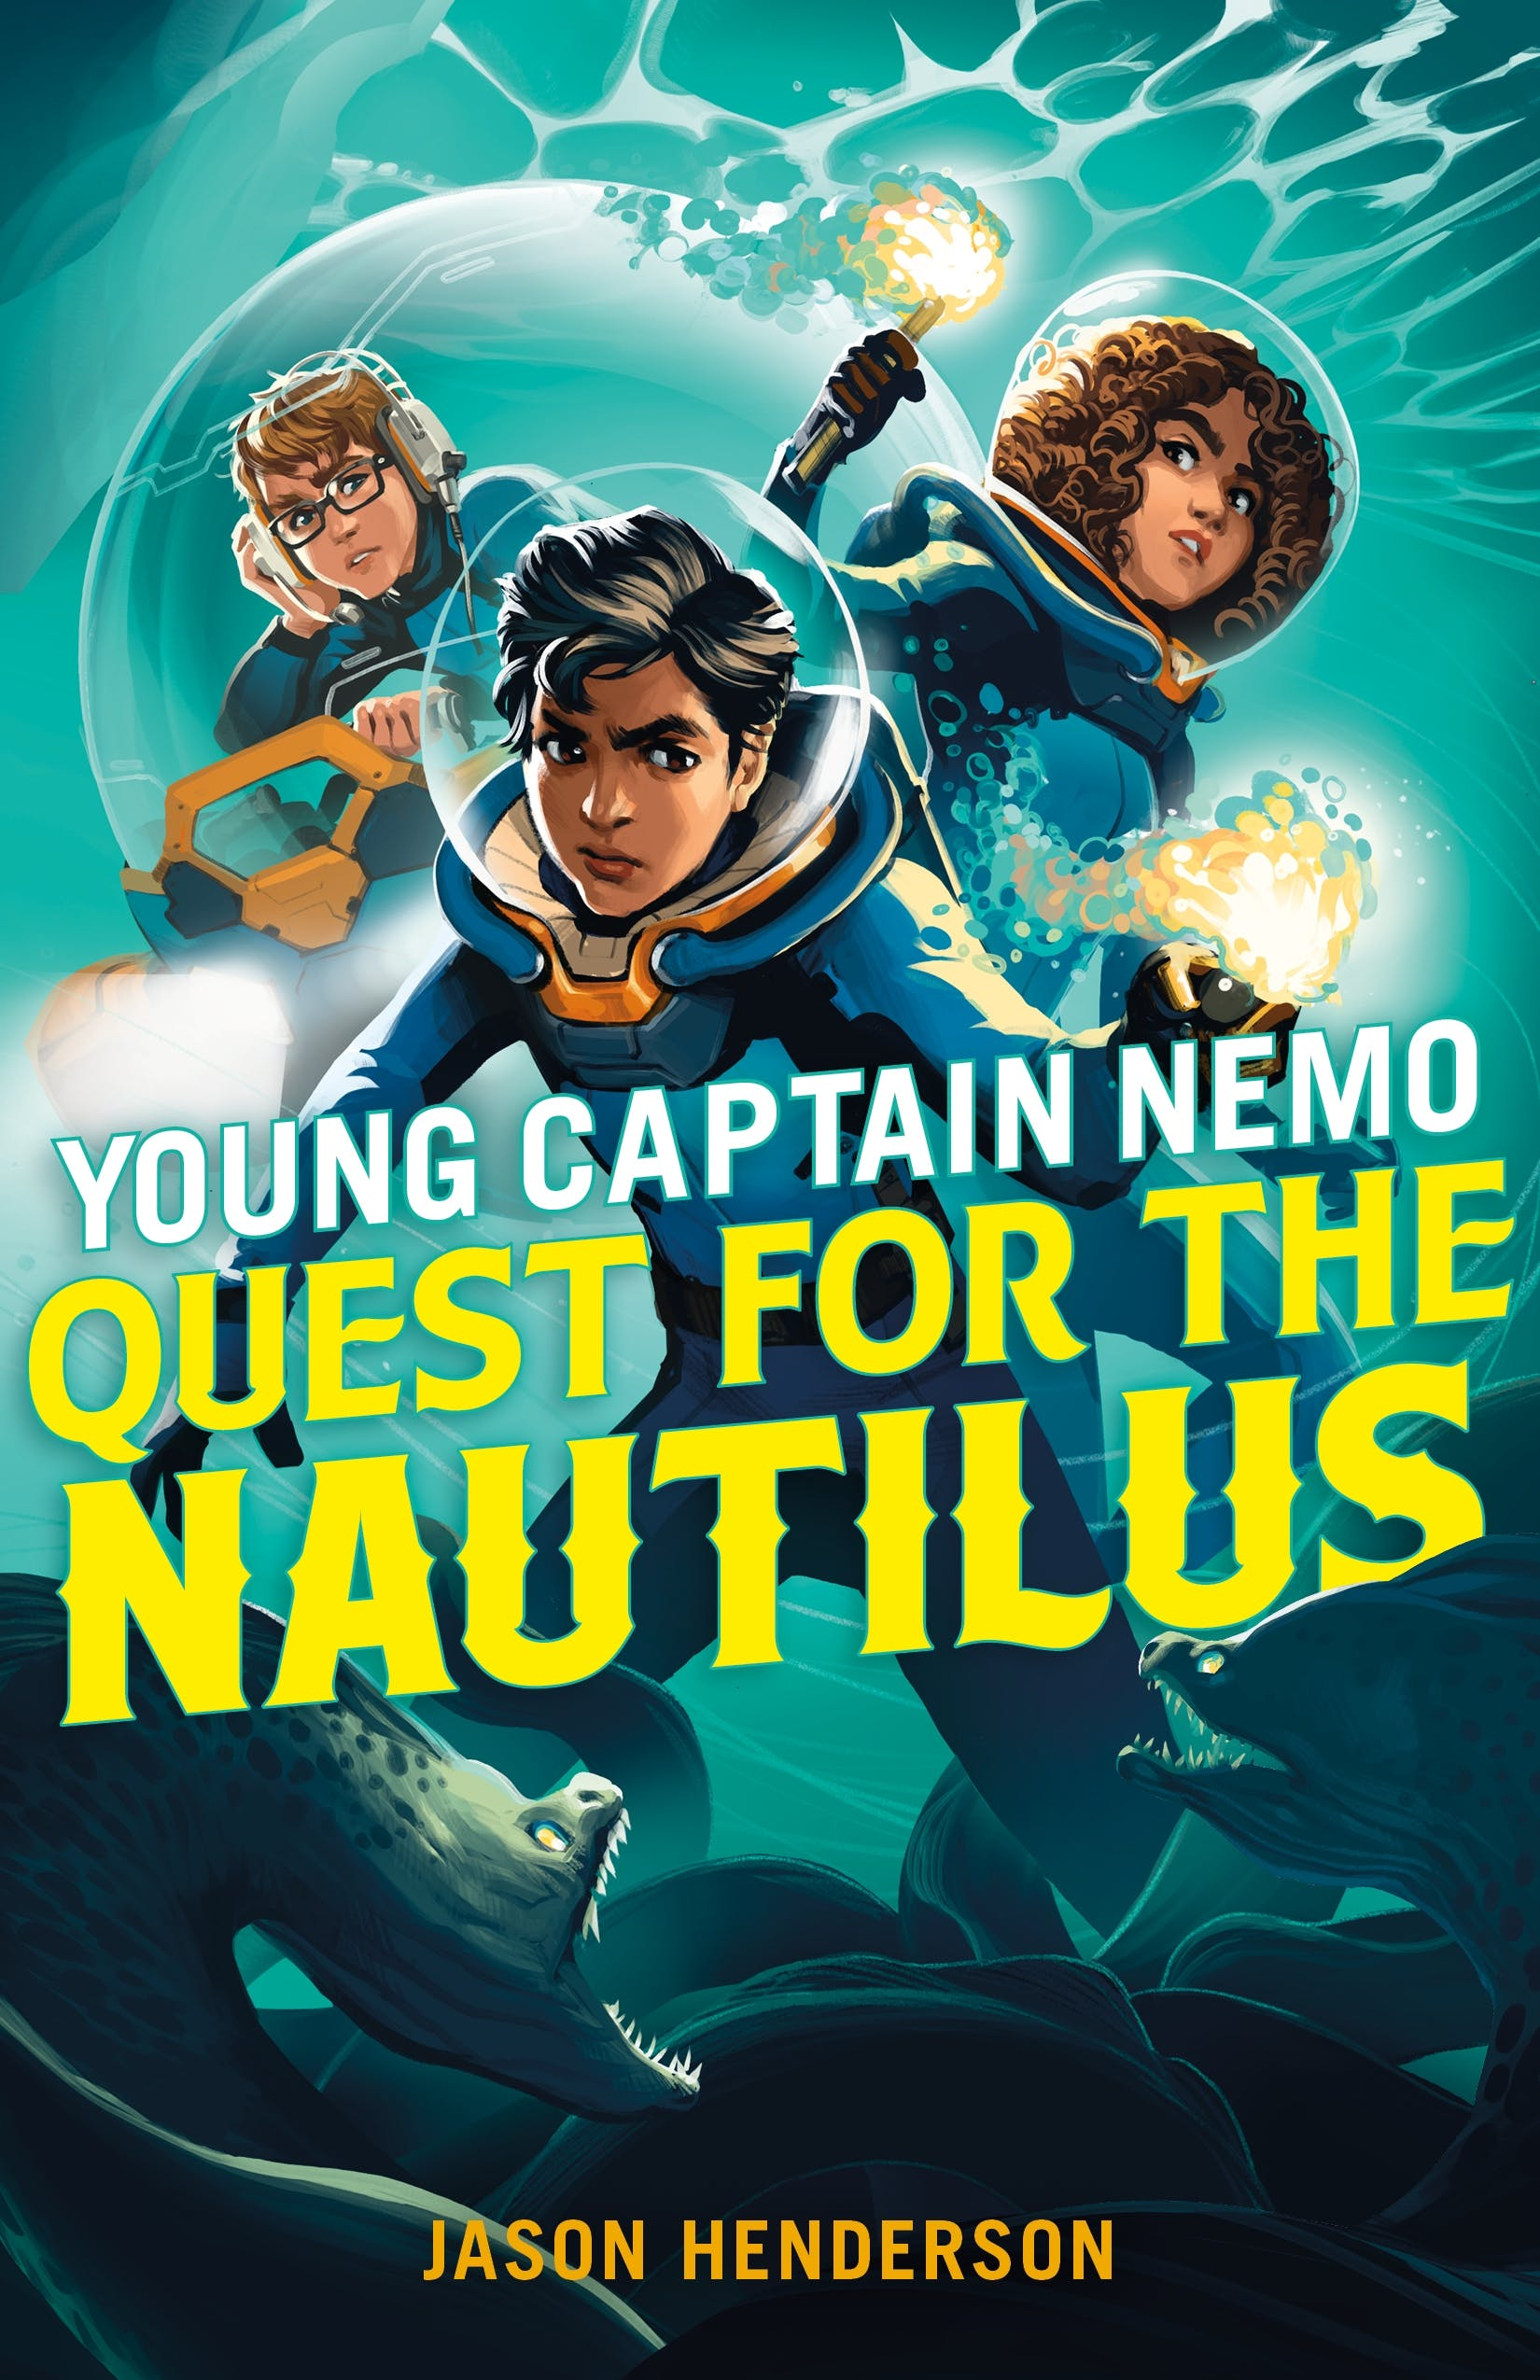 Image of Quest for the Nautilus: Young Captain Nemo